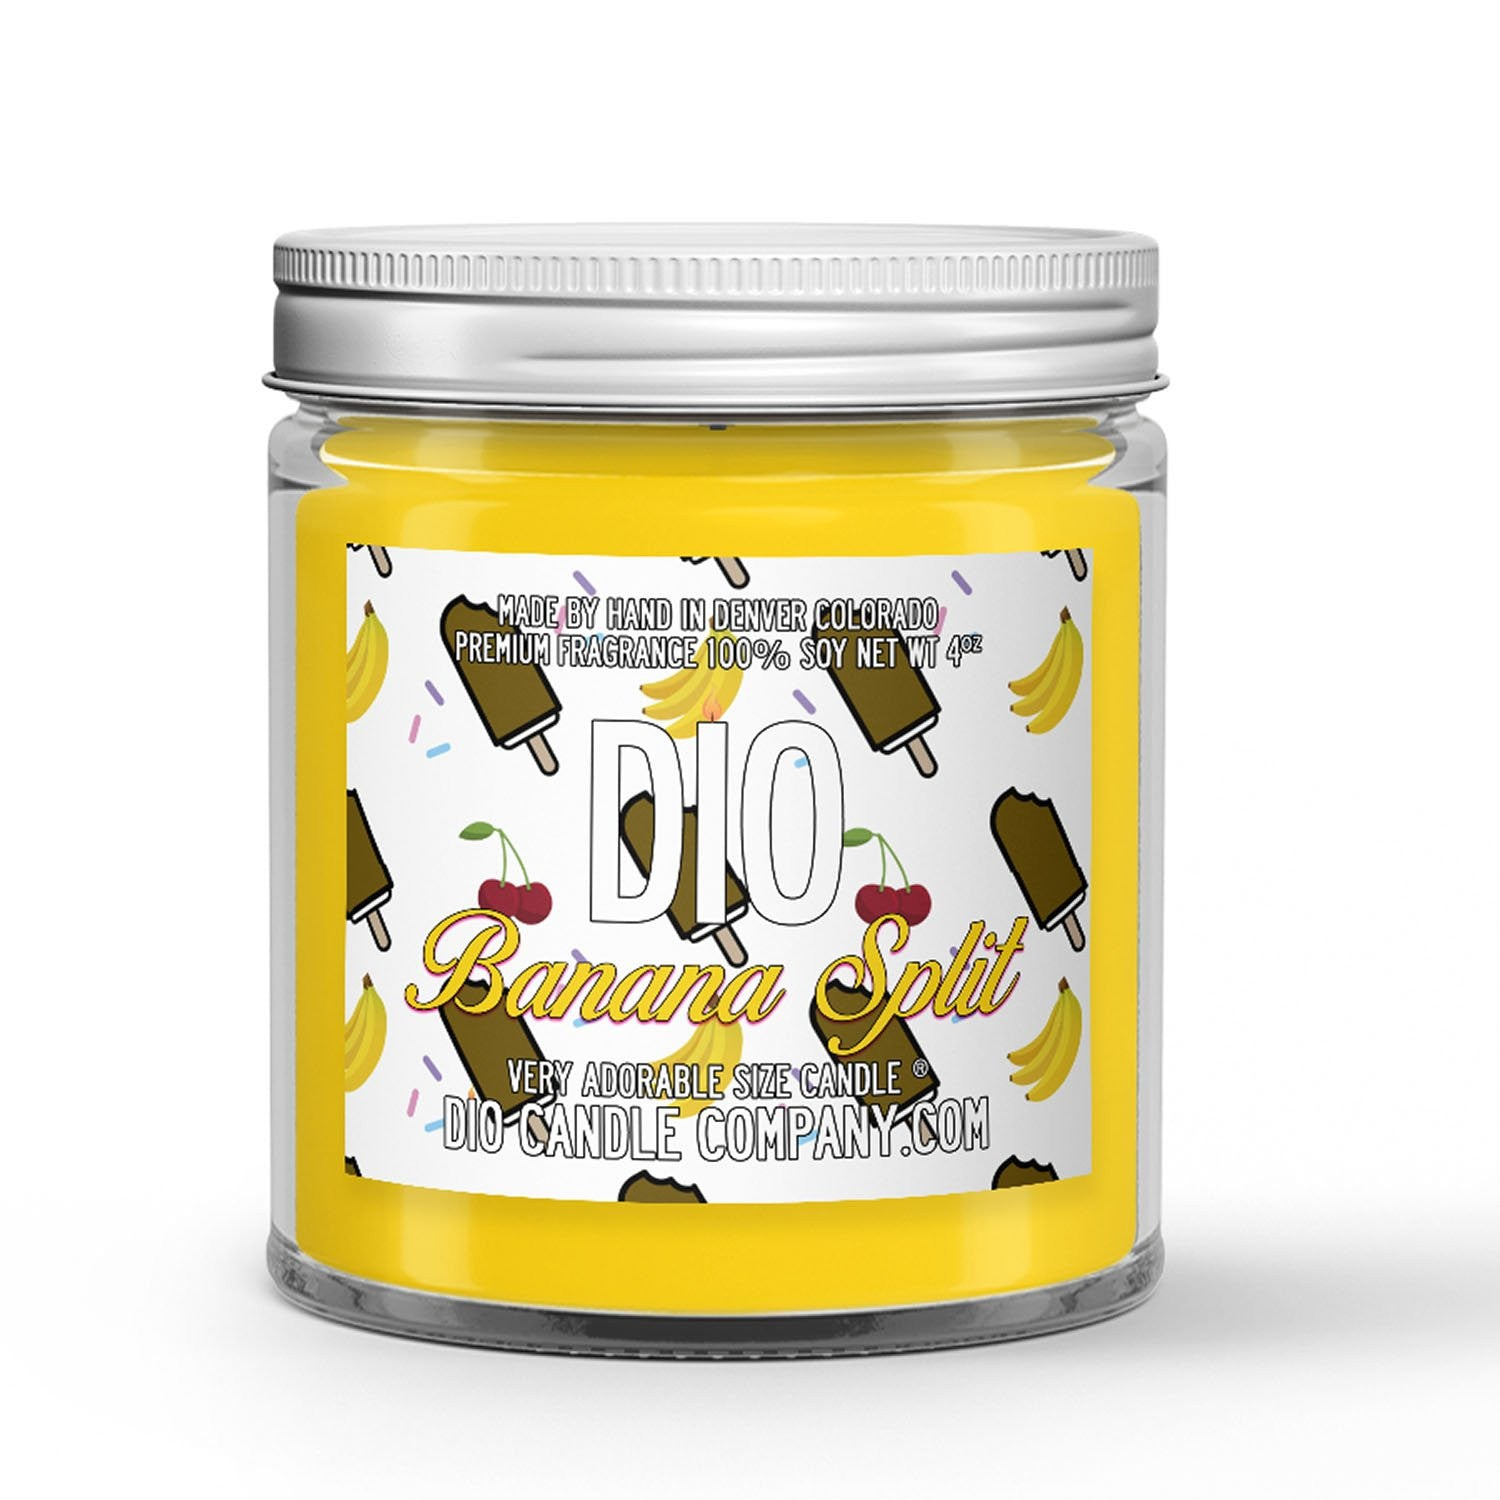 Chocolate Banana Ice Cream - Cherry - Hot Fudge Scented - Banana Split Ice Cream Candle - 4 oz - Dio Candle Company